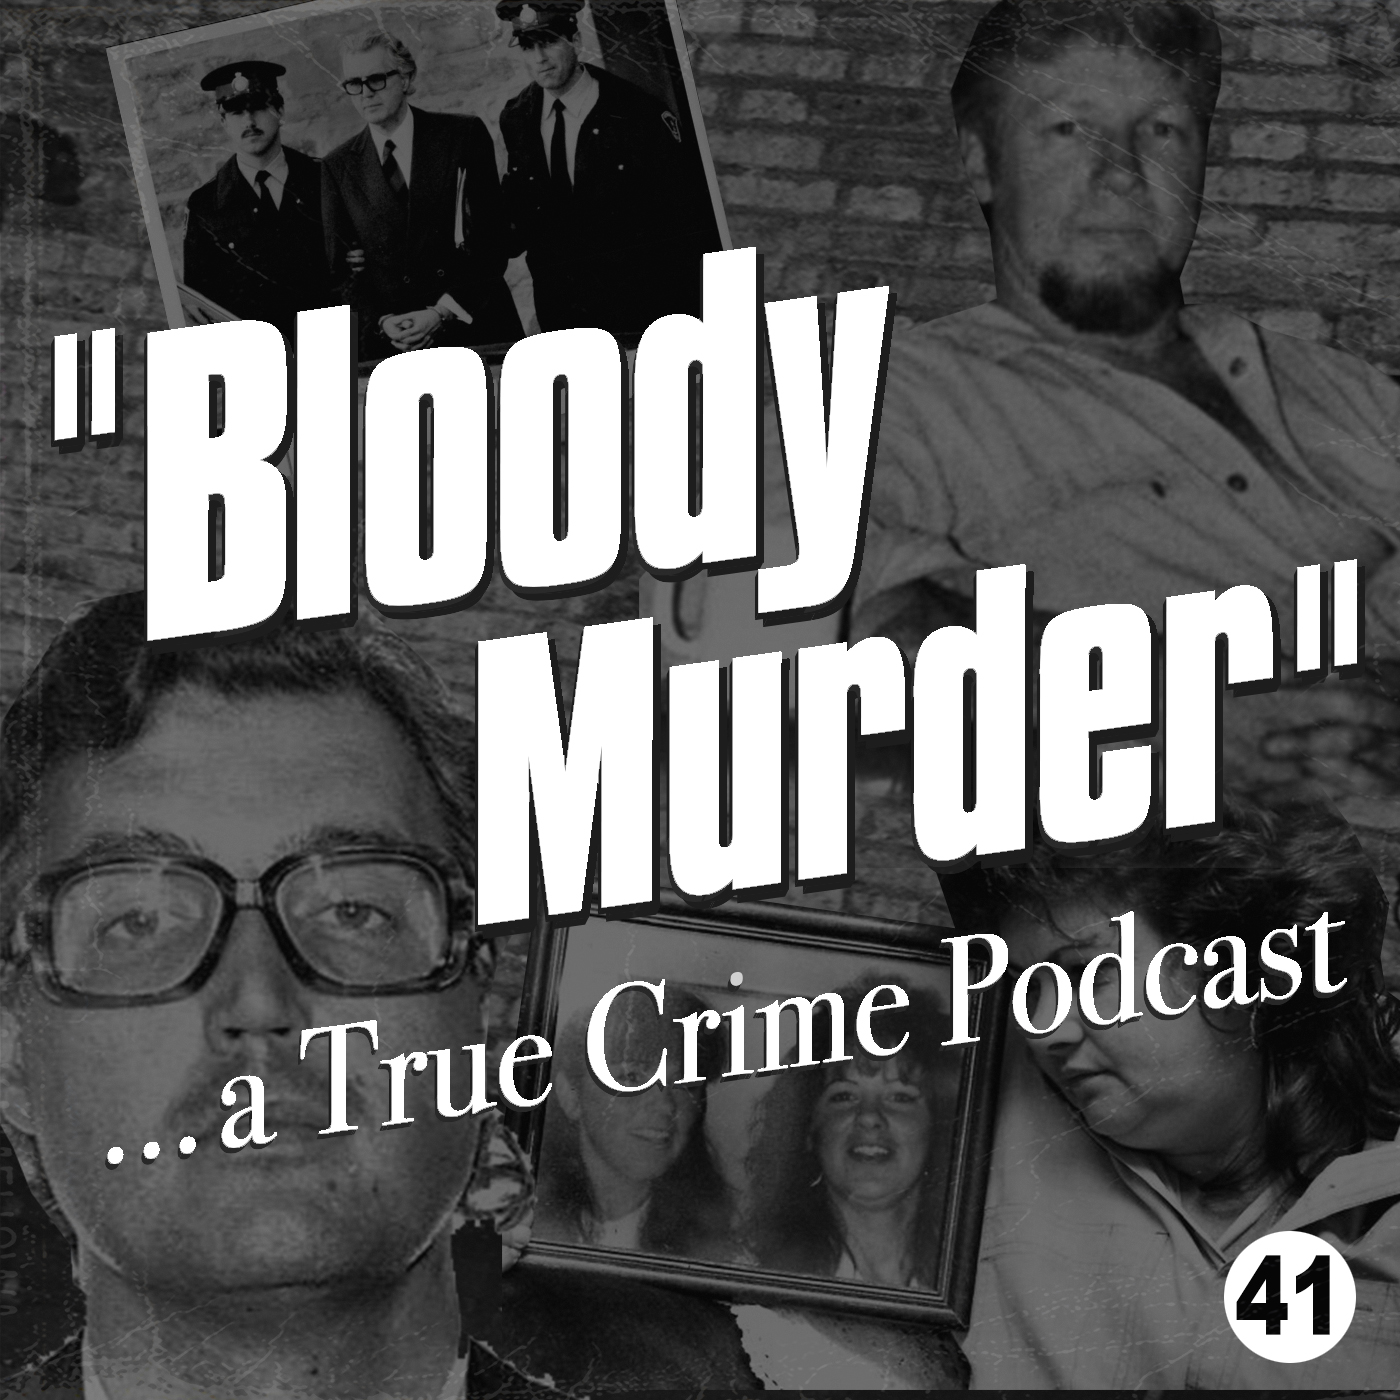 41 - Peter Dementer and The Central Coast Massacre